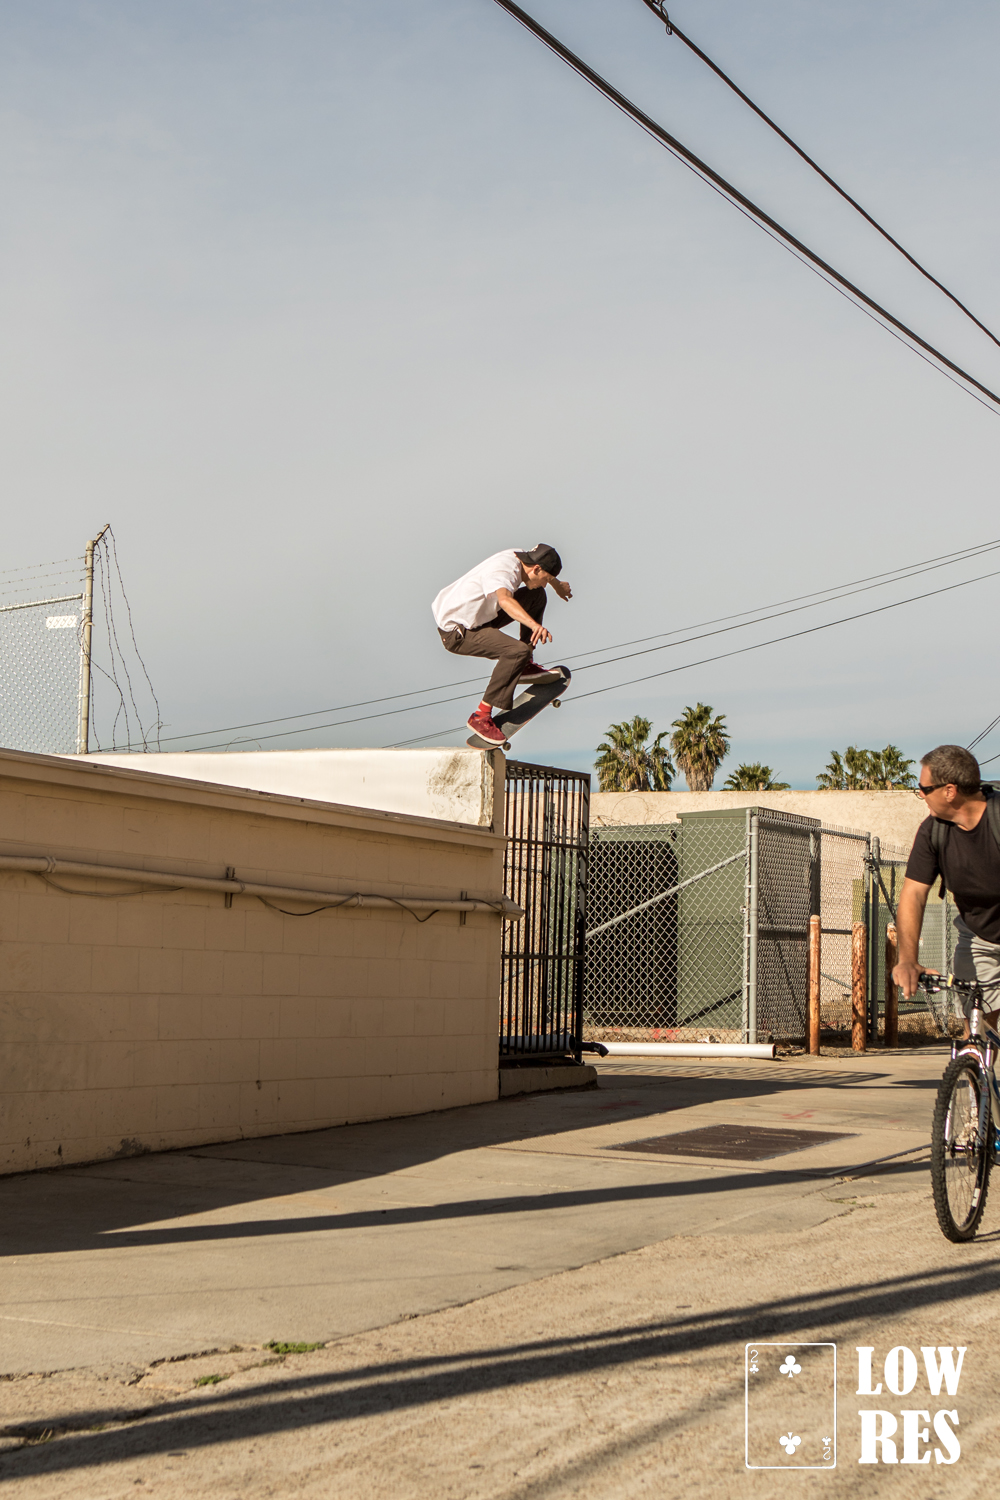 Andy Mack - Wallie - Ian Stribling